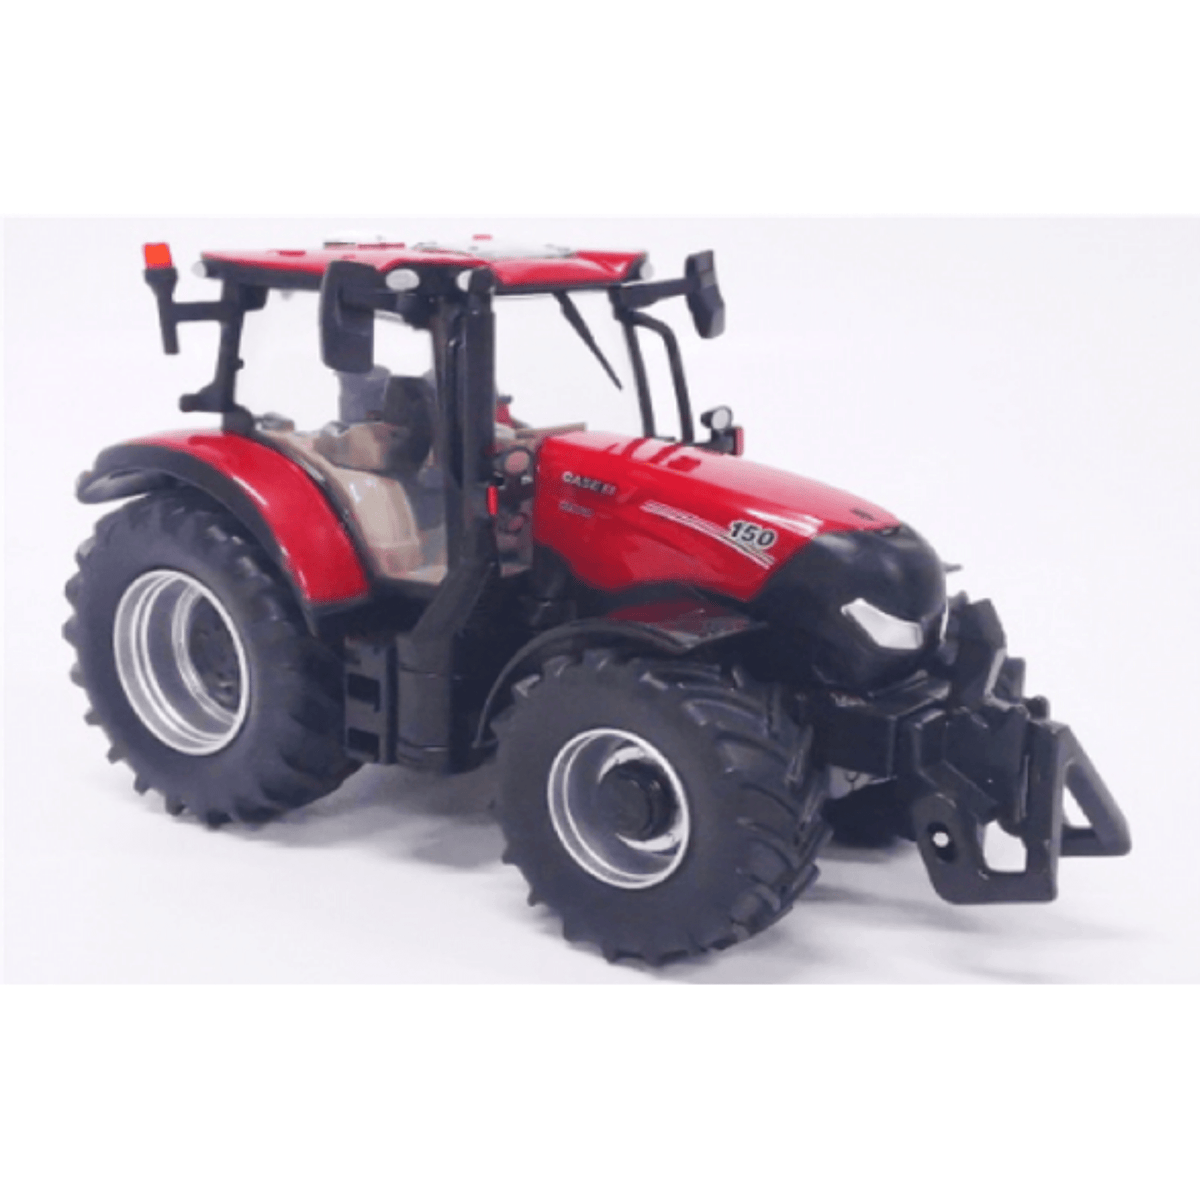 Britains Toy Case Maxxum 150 Tractor